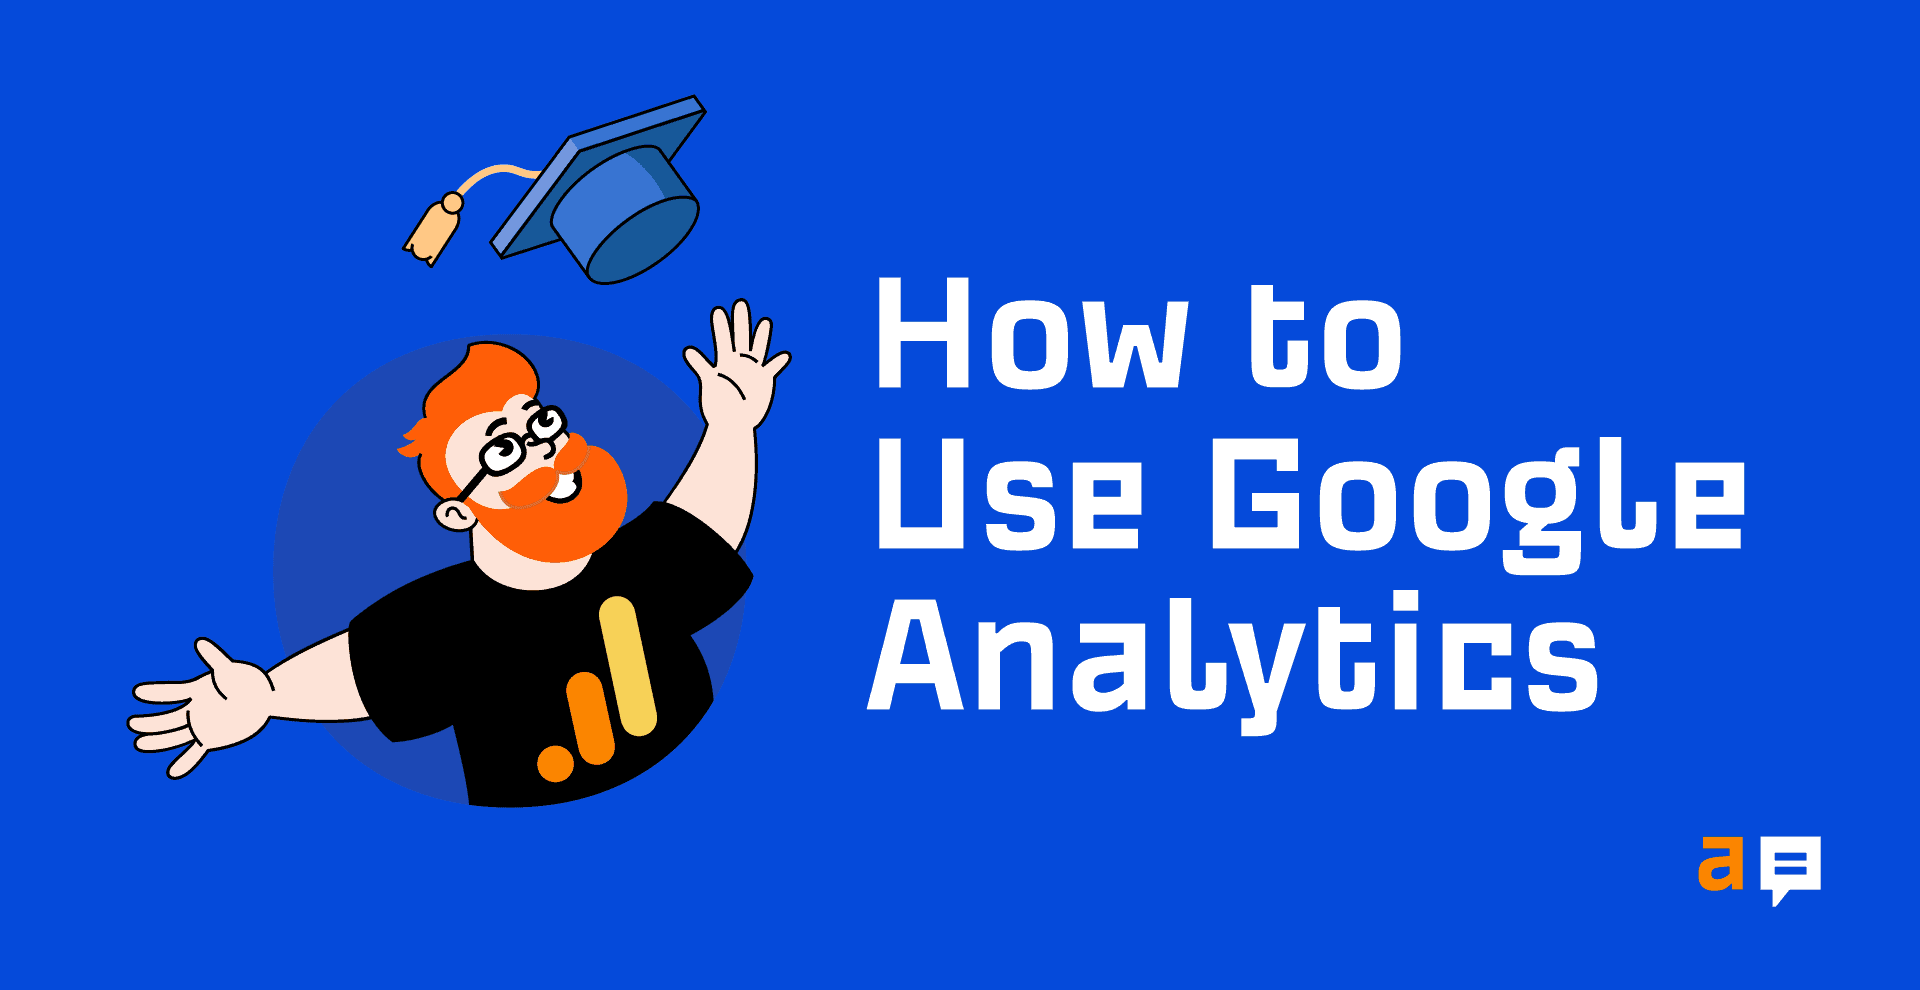 How to Use Google Analytics 4 for Beginners [2021 Guide]